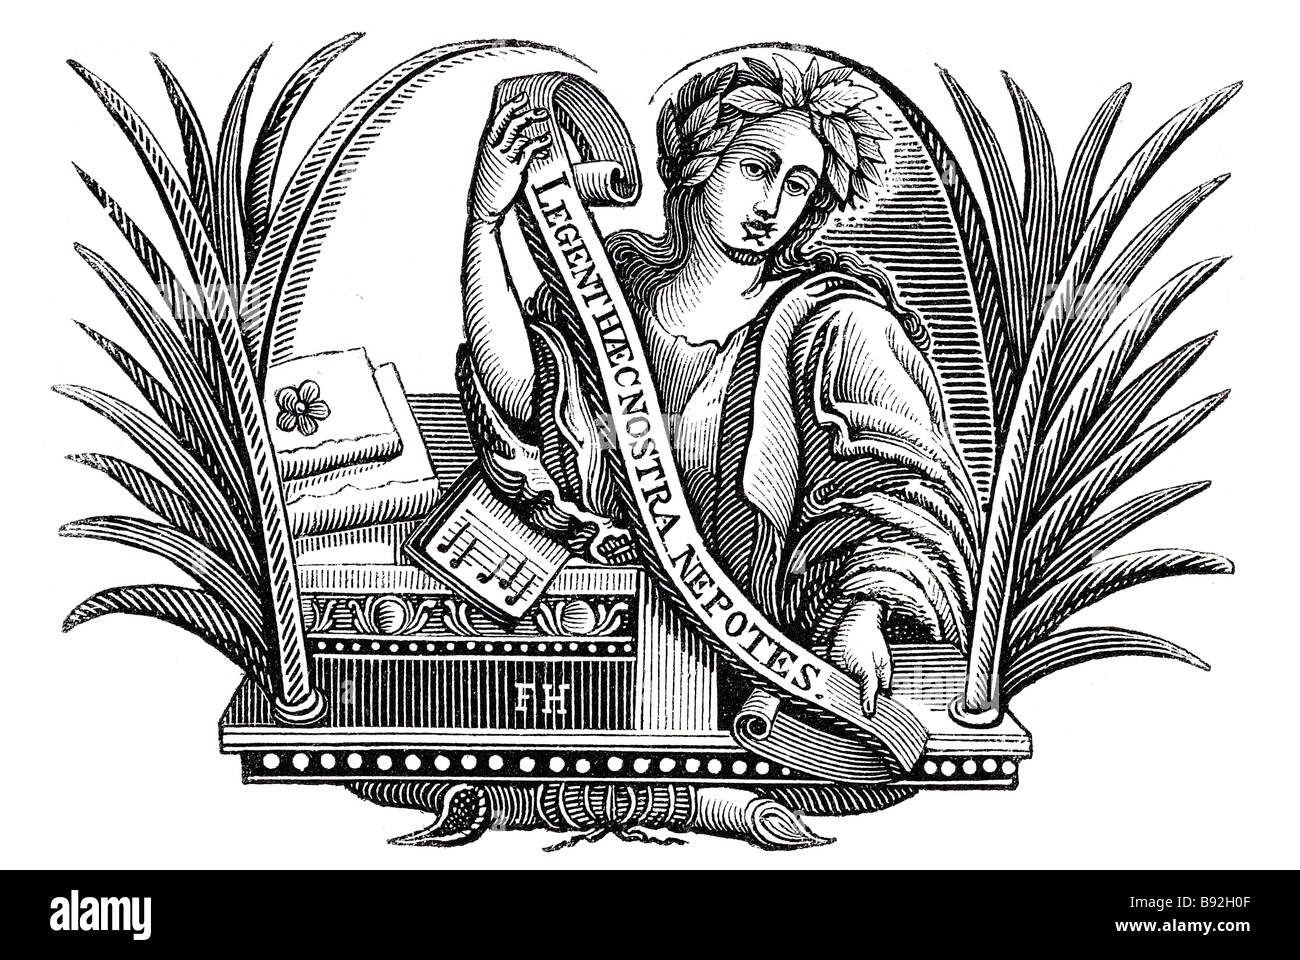 palm leaves man period dress banner scripture music books leave crown Samuel Croxall (died 1752), Poet and literary - Stock Image